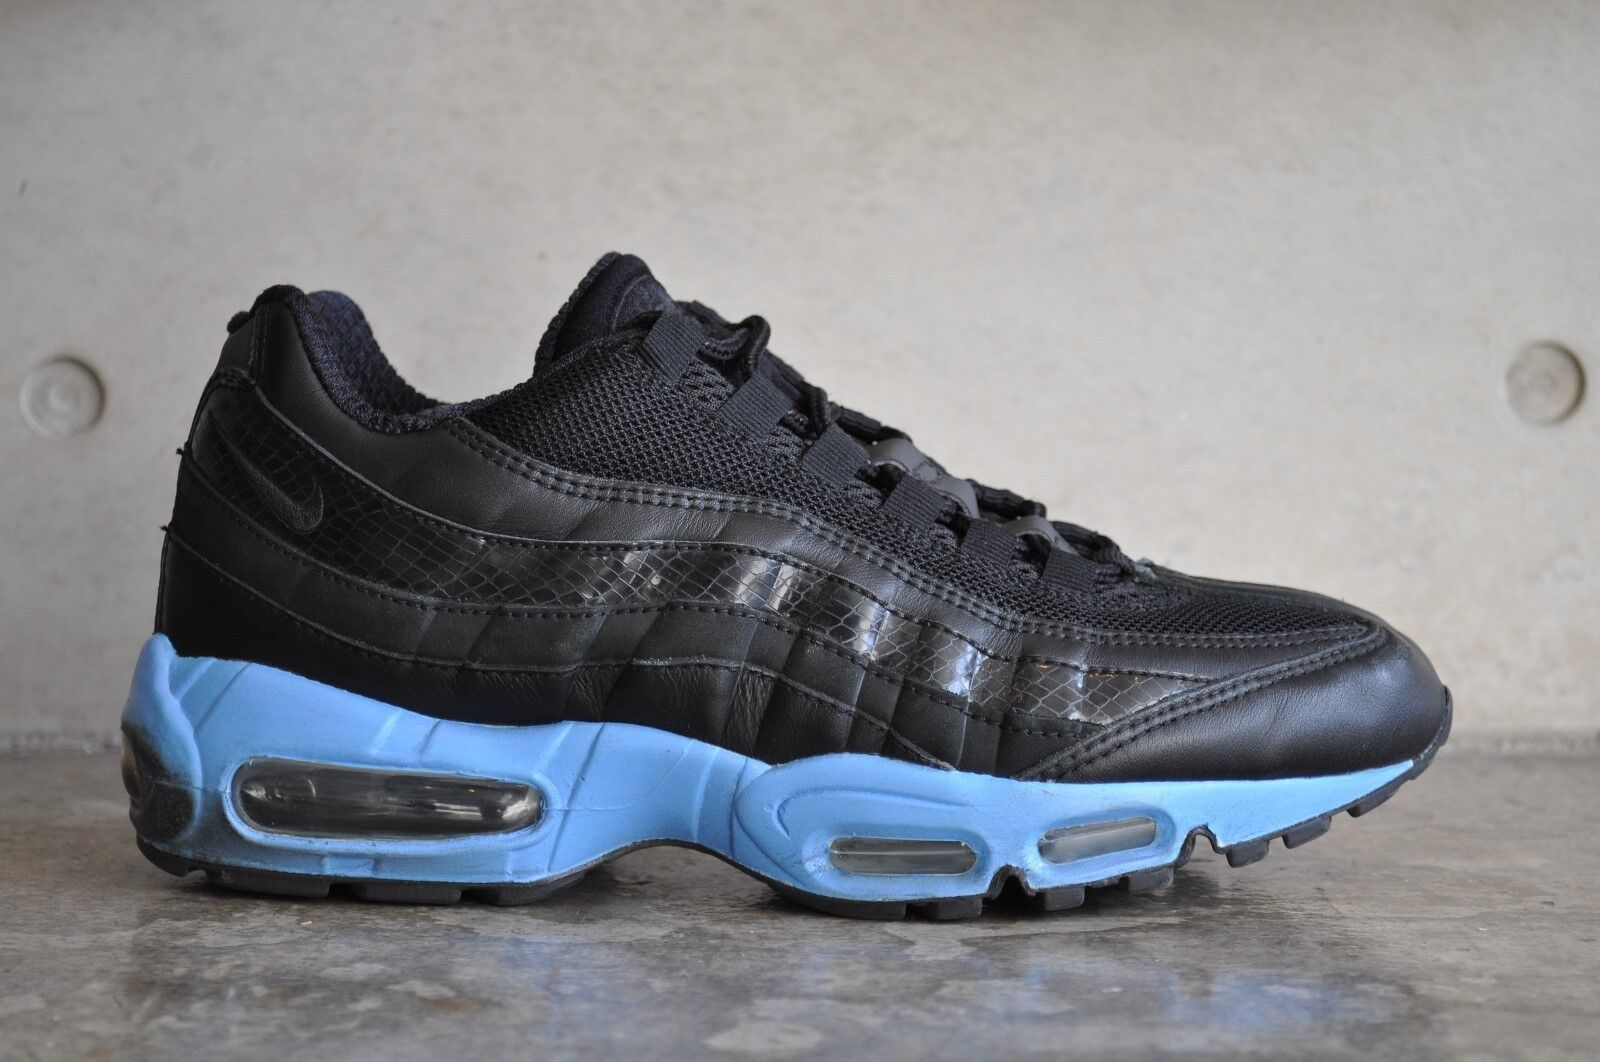 Nike Air Max 95 2006 - Black Black-University bluee 6.5 UK